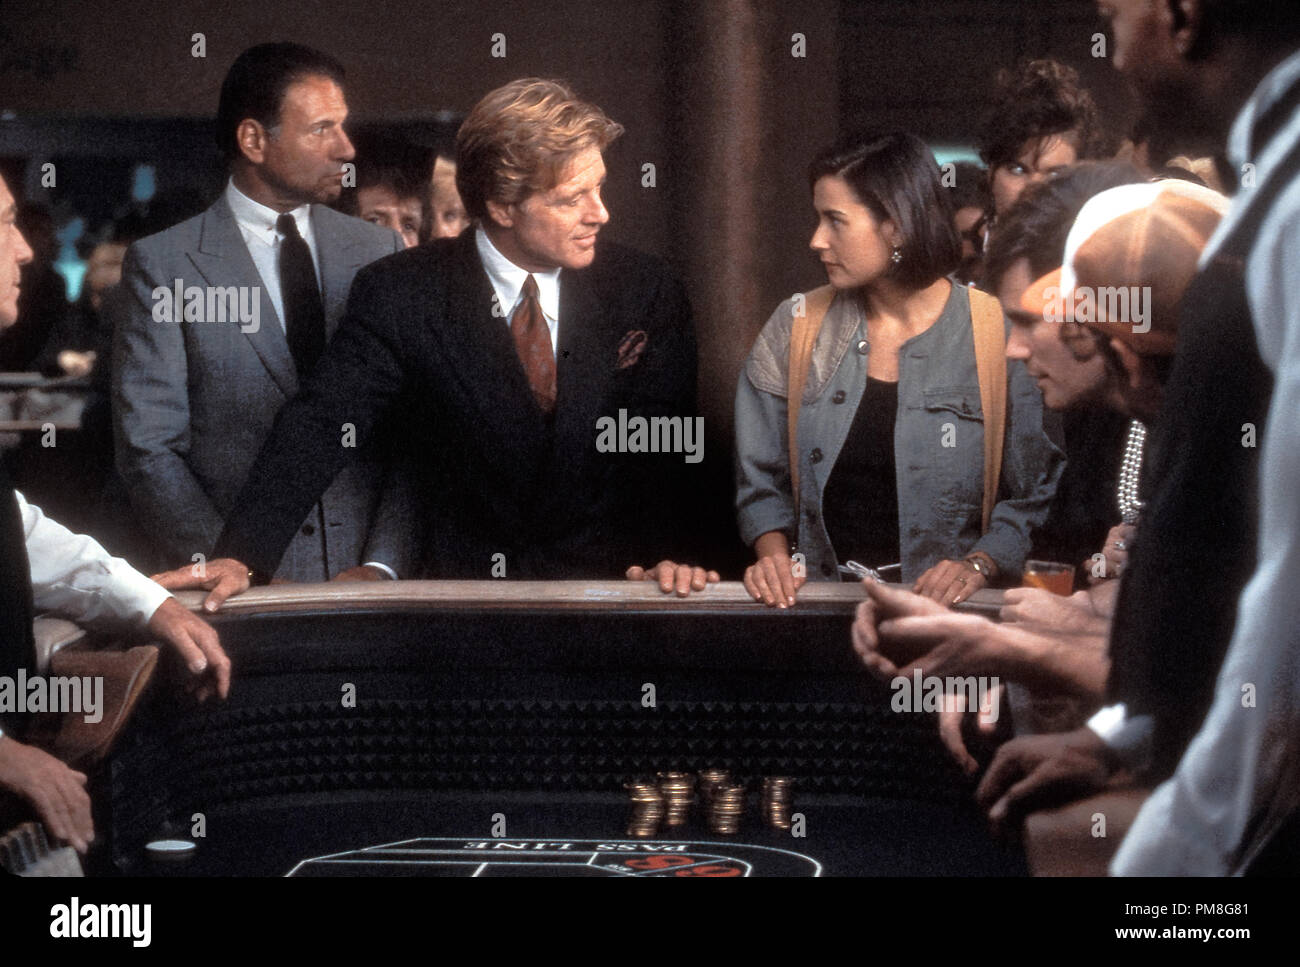 Film still / publicity still from 'Indecent Proposal' Robert Redford, Demi Moore © 1993 Paramount Photo Credit: David James   File Reference # 31371259THA  For Editorial Use Only All Rights Reserved - Stock Image